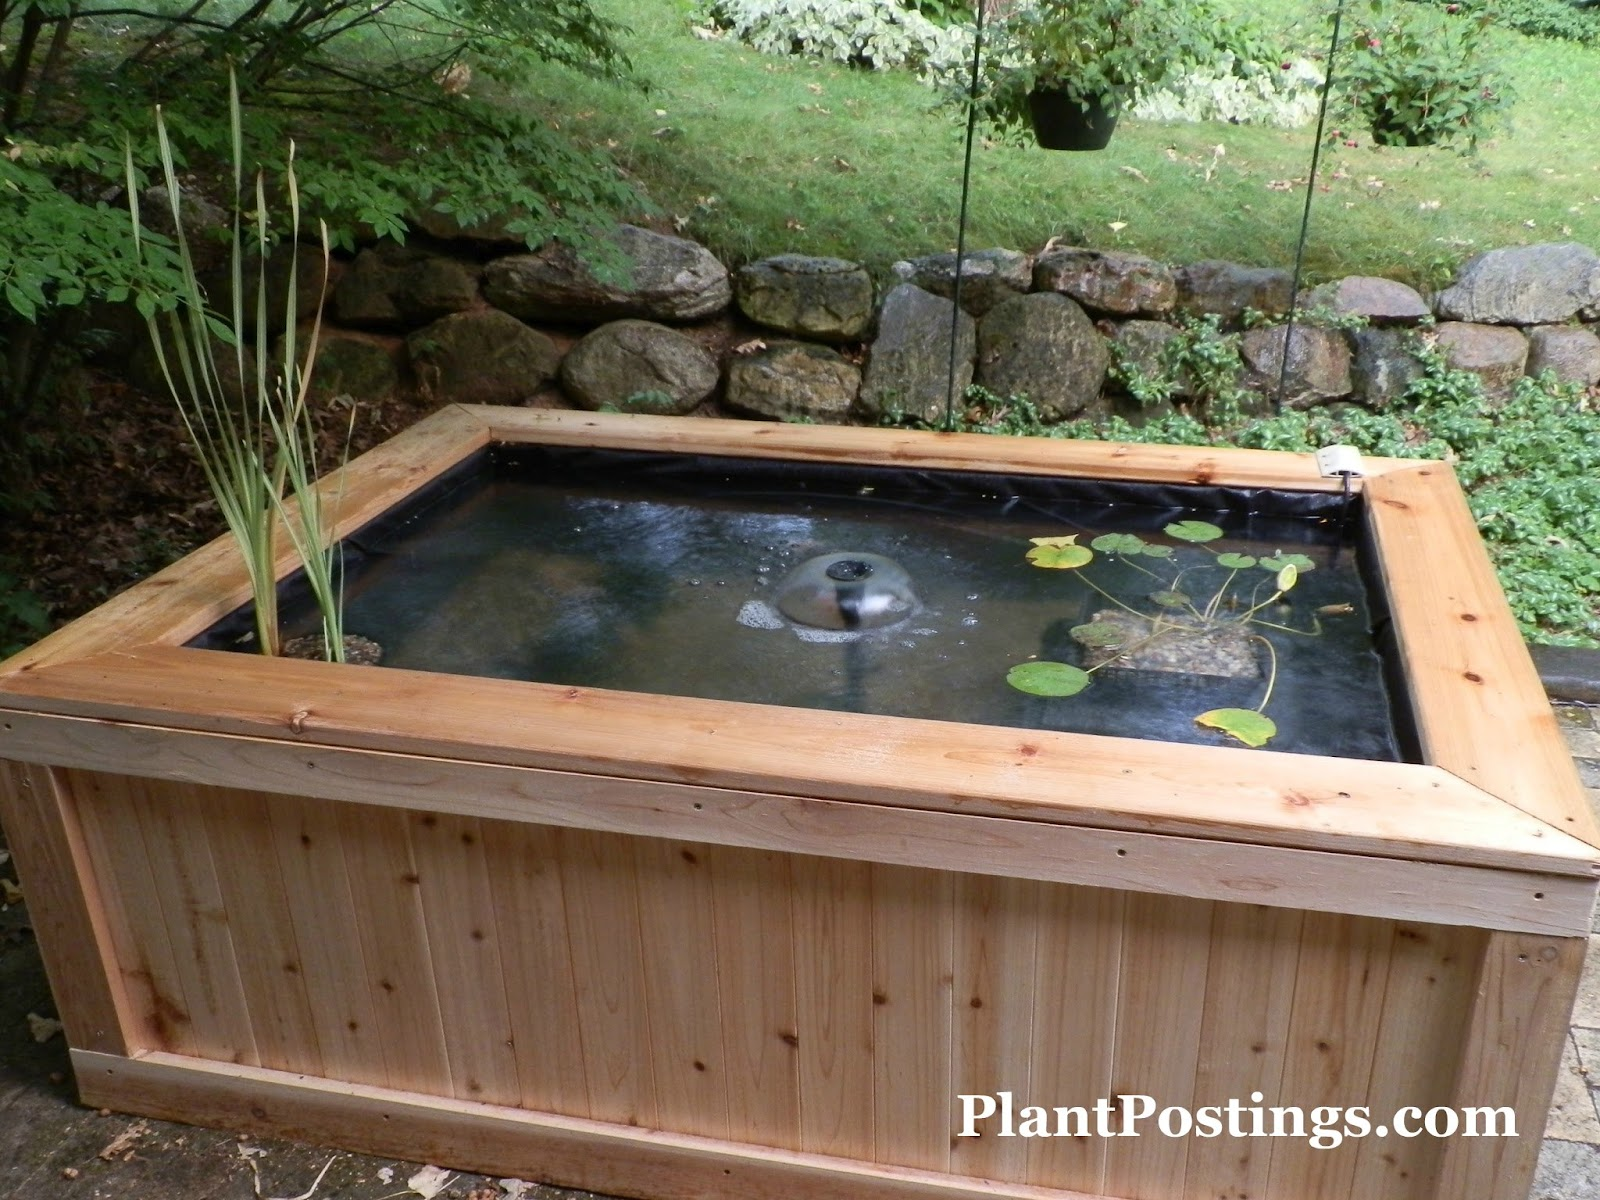 Plantpostings how to make an above ground pond for Making a koi pond